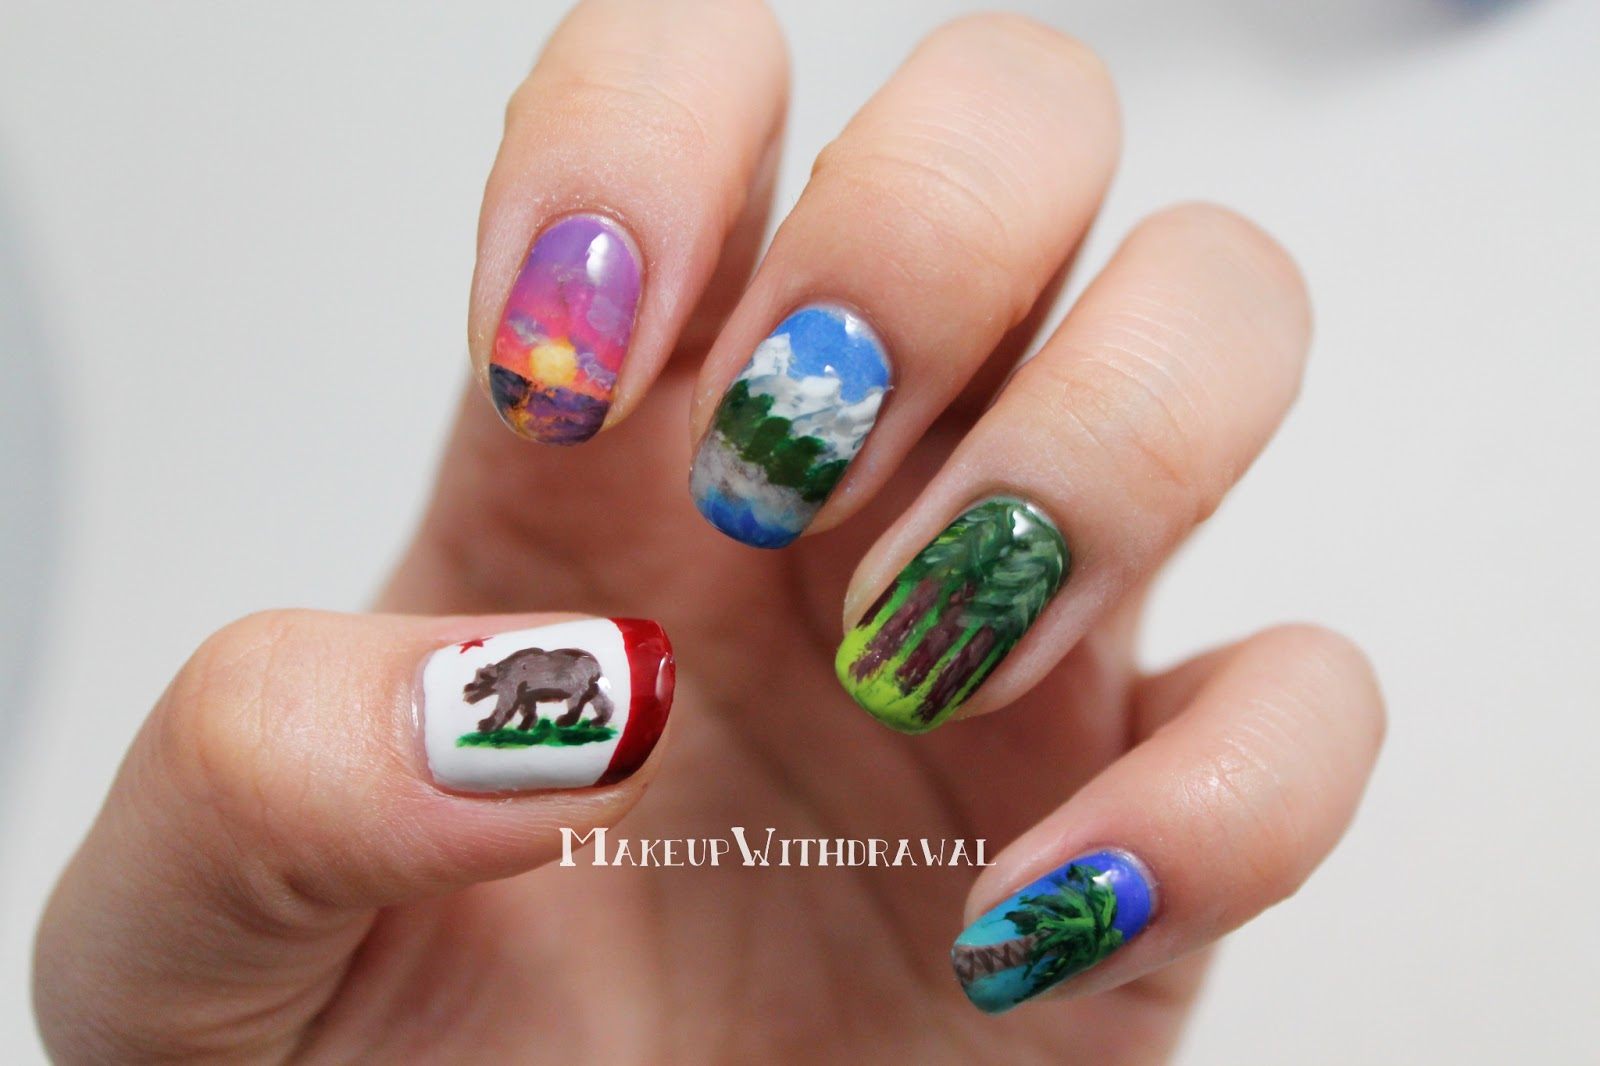 California nails makeup withdrawal i havent really posted a lot in the past few days ive been rather crazy busy with the kitten long story i promise to post about it soon prinsesfo Choice Image